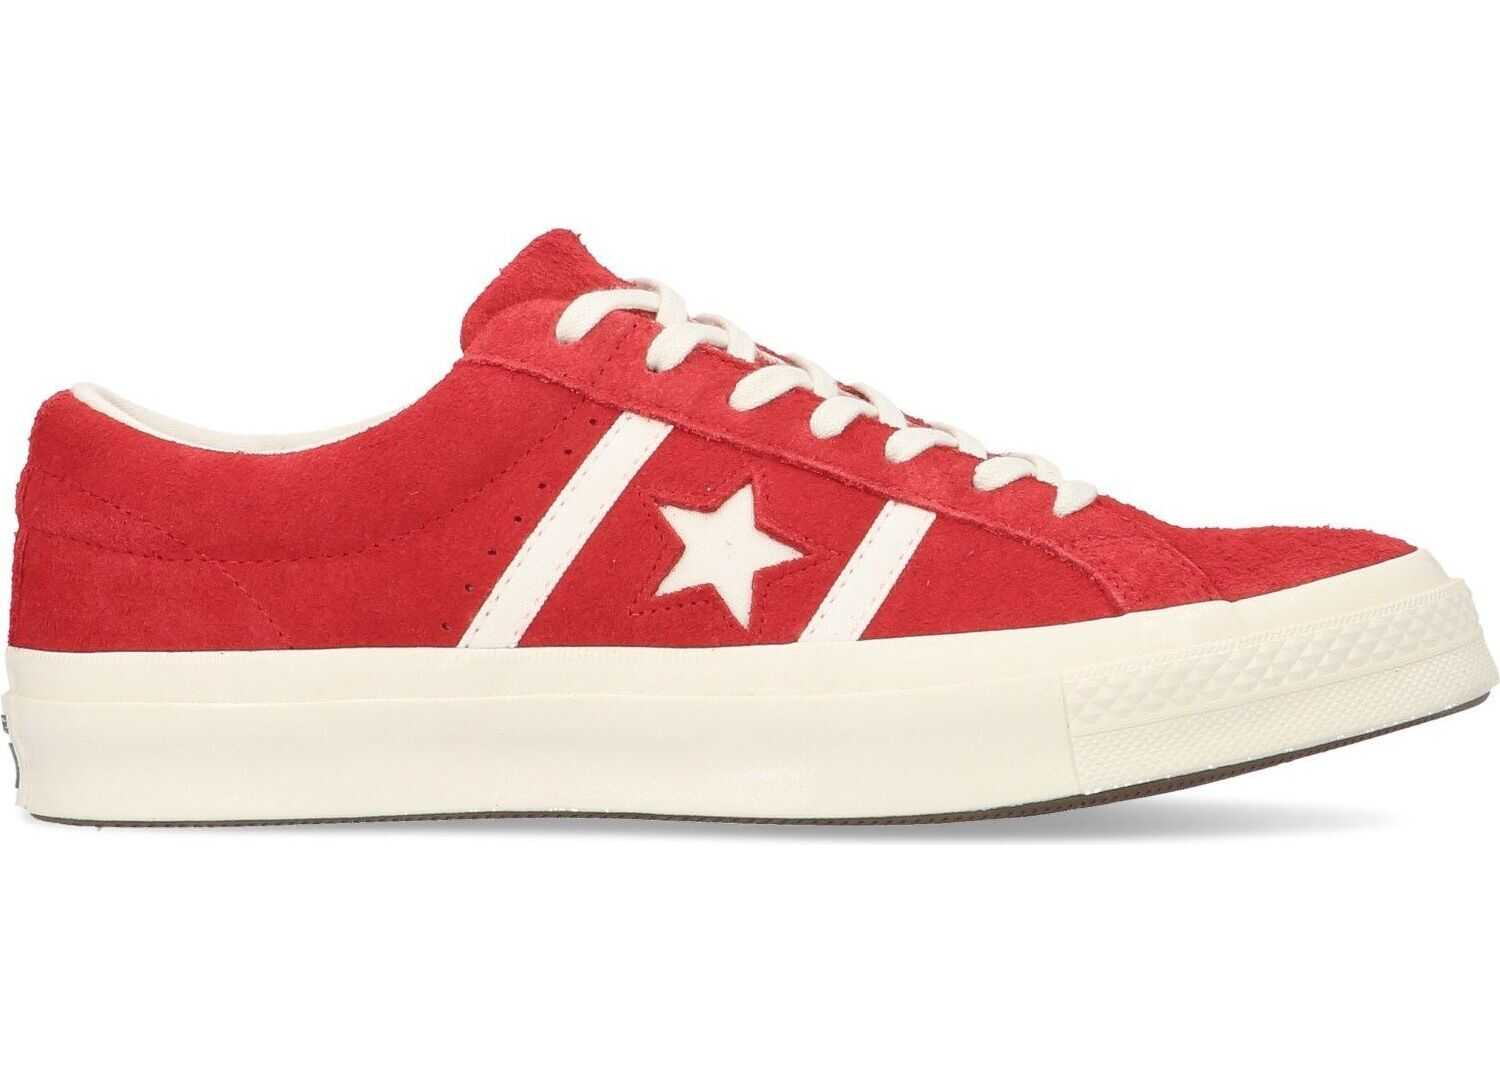 Converse Leather Sneakers RED